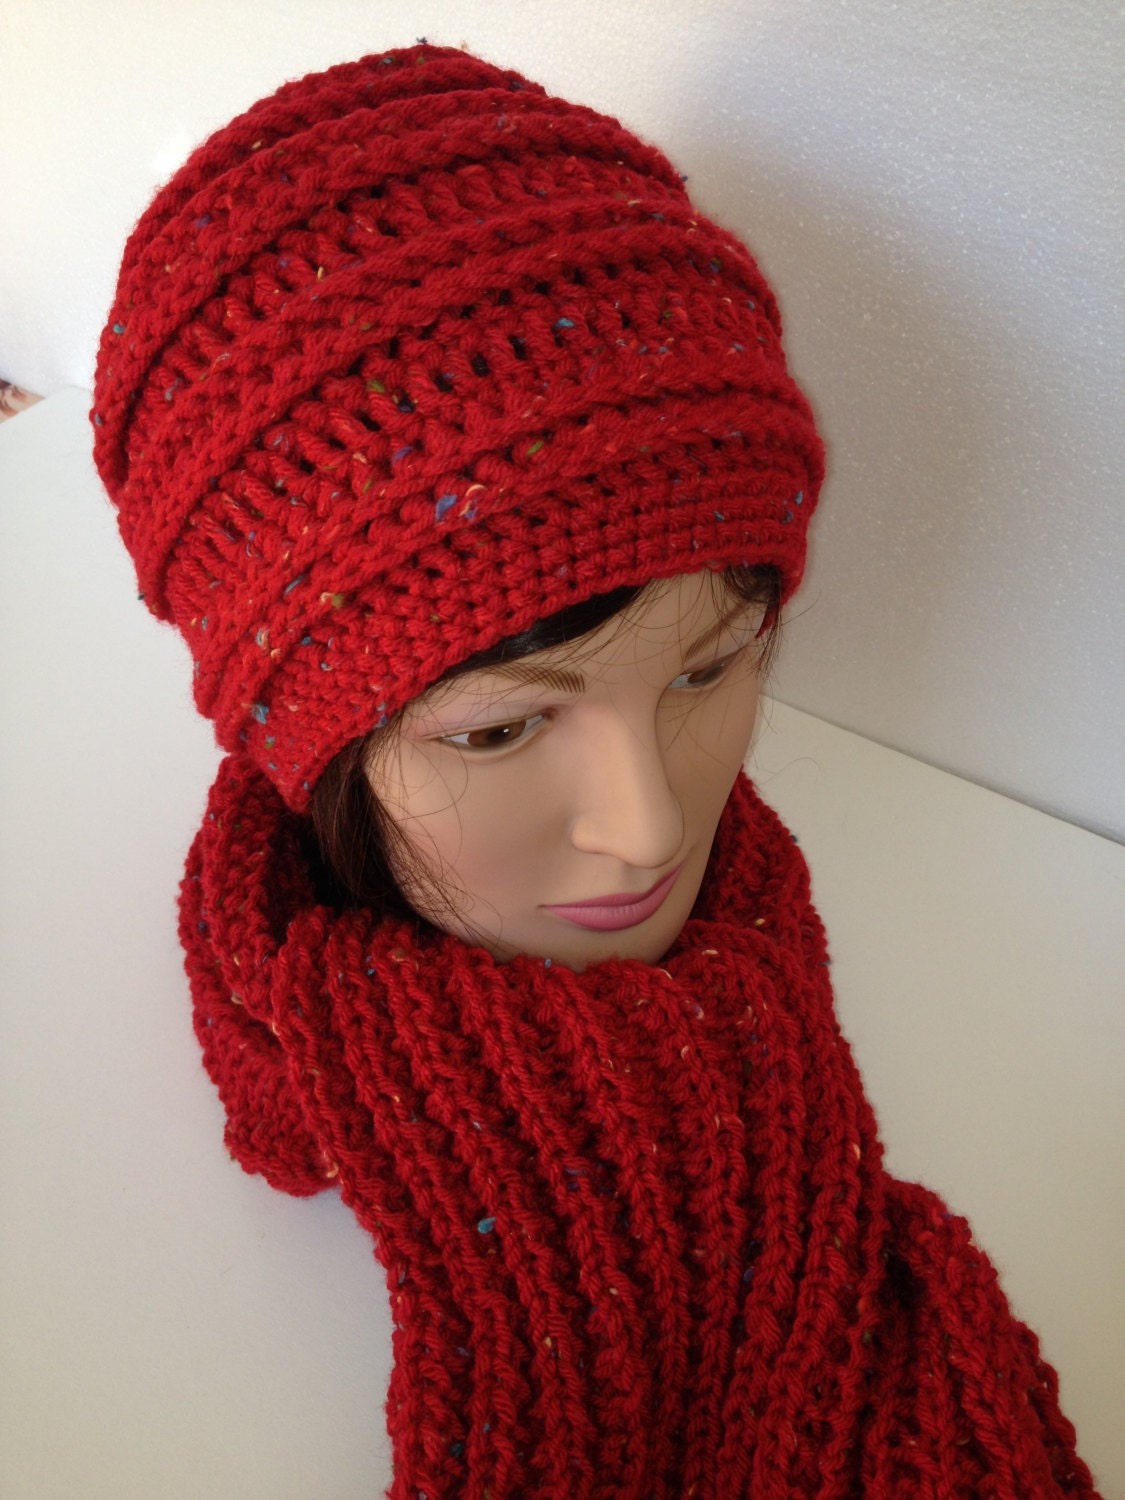 Crochet hipster Beanie Cloche hat with Knitted Scarf.